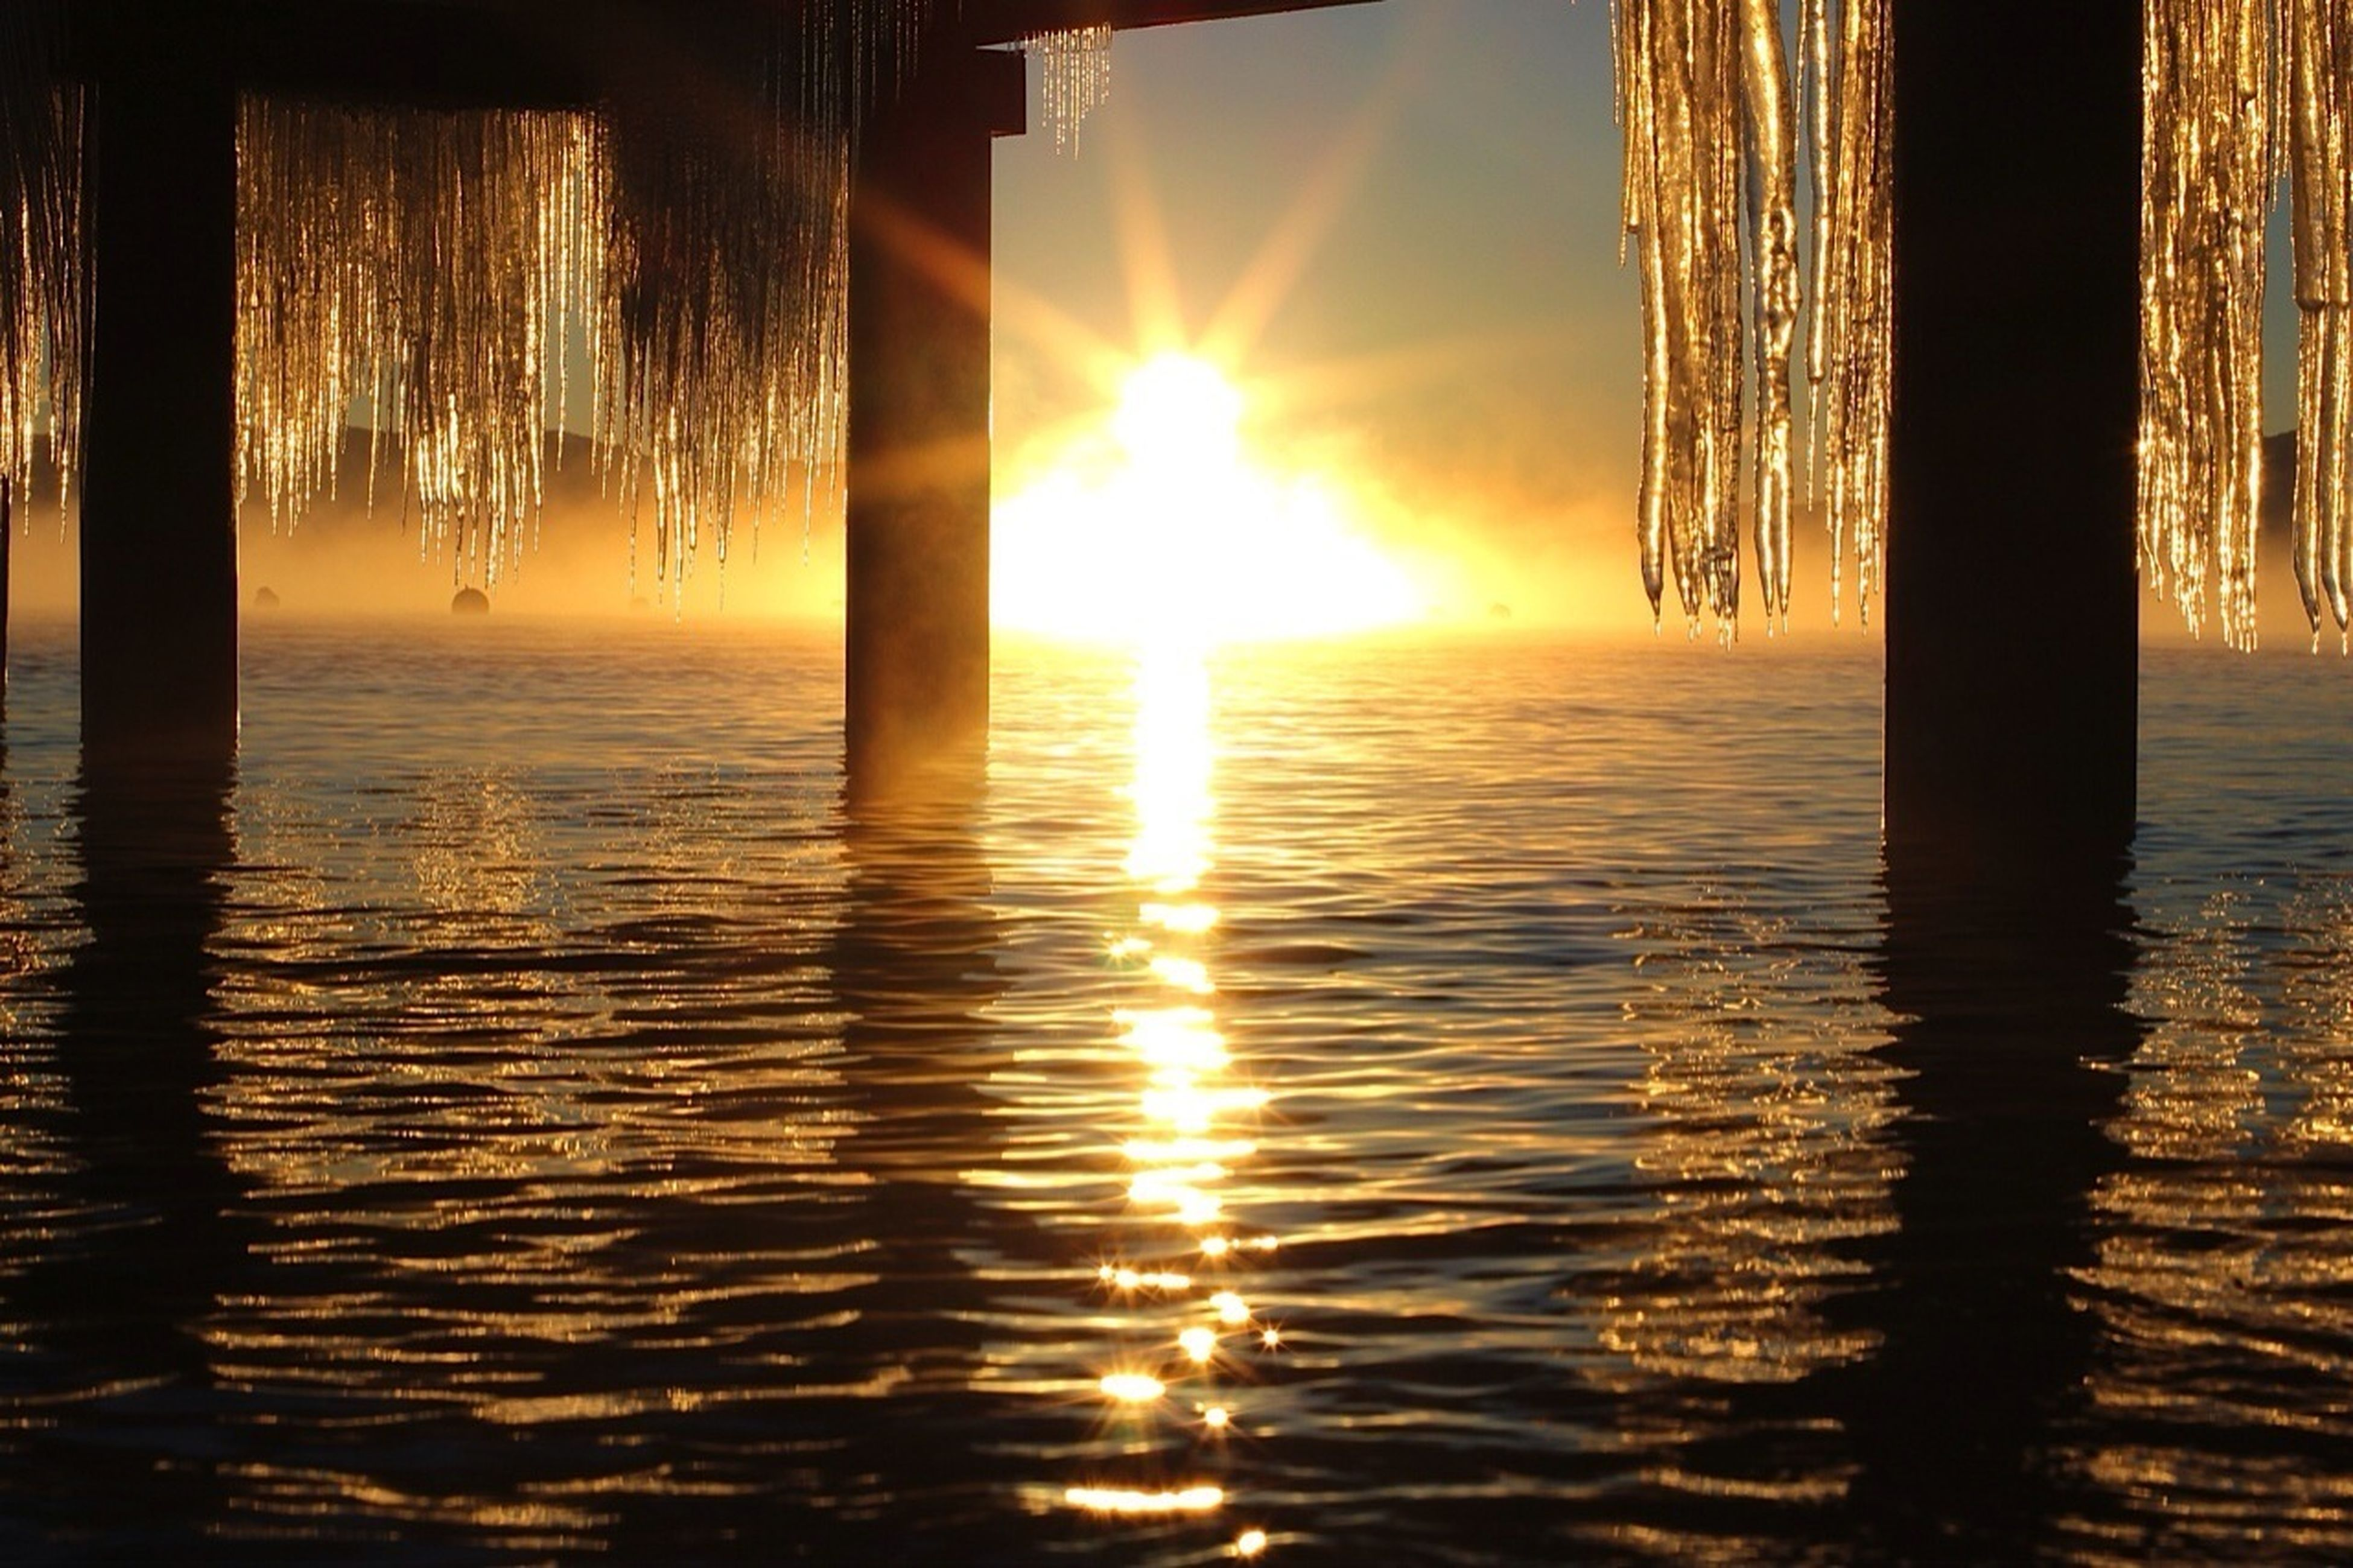 sunset, water, sun, reflection, waterfront, sunlight, orange color, silhouette, tranquility, rippled, nature, tranquil scene, sea, beauty in nature, lake, scenics, built structure, sky, sunbeam, architecture